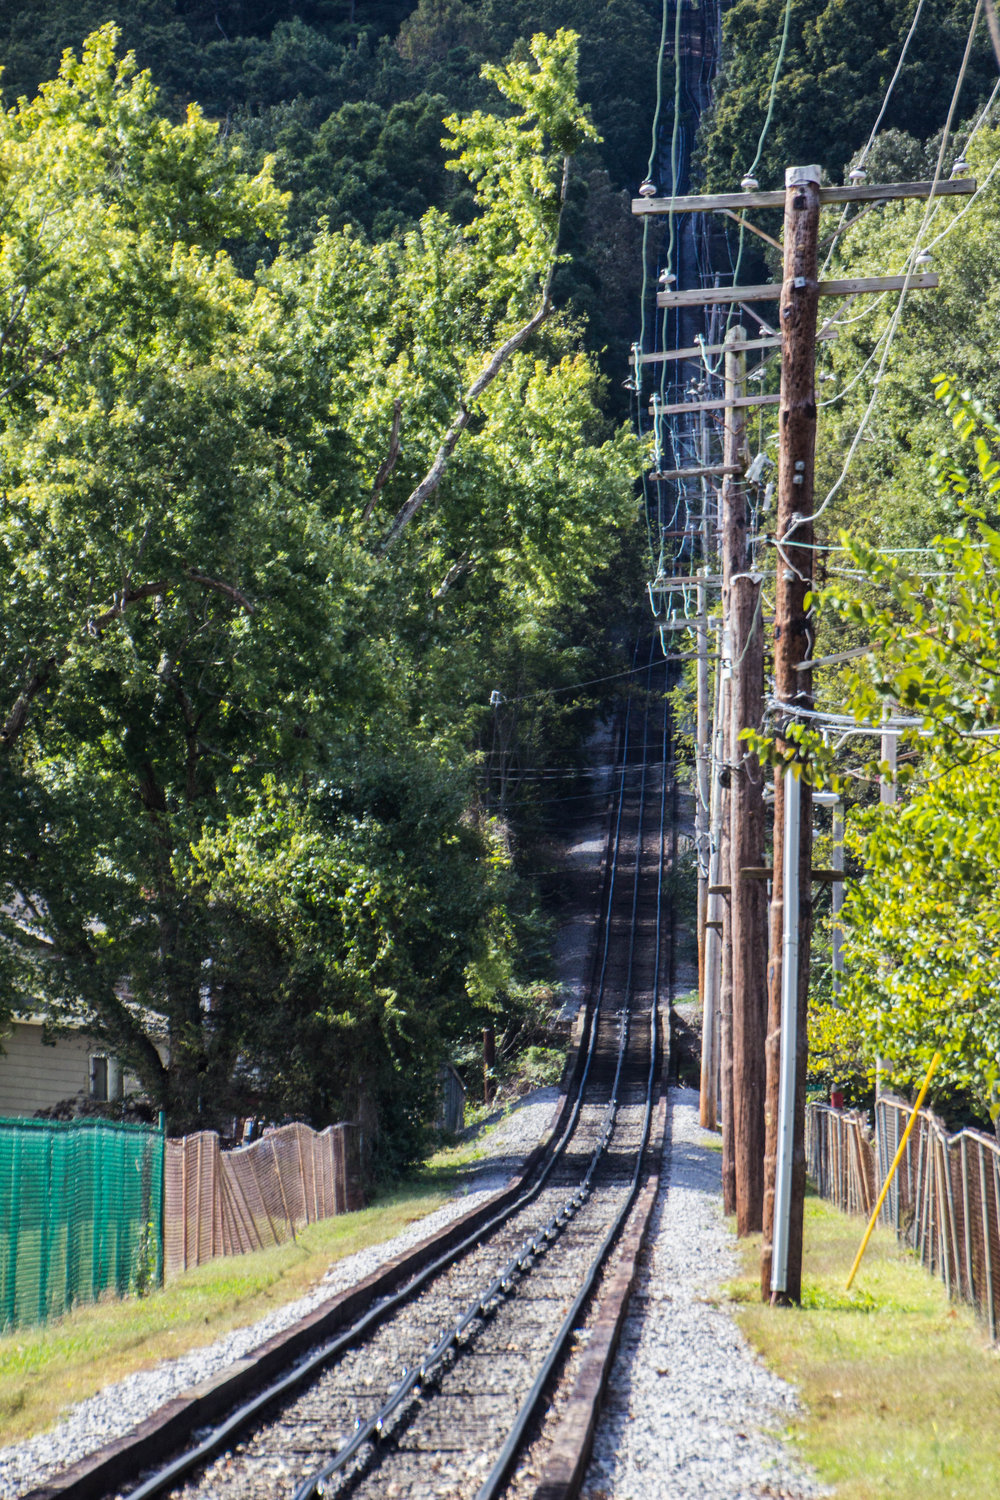 chattanooga-incline-railway-4.jpg